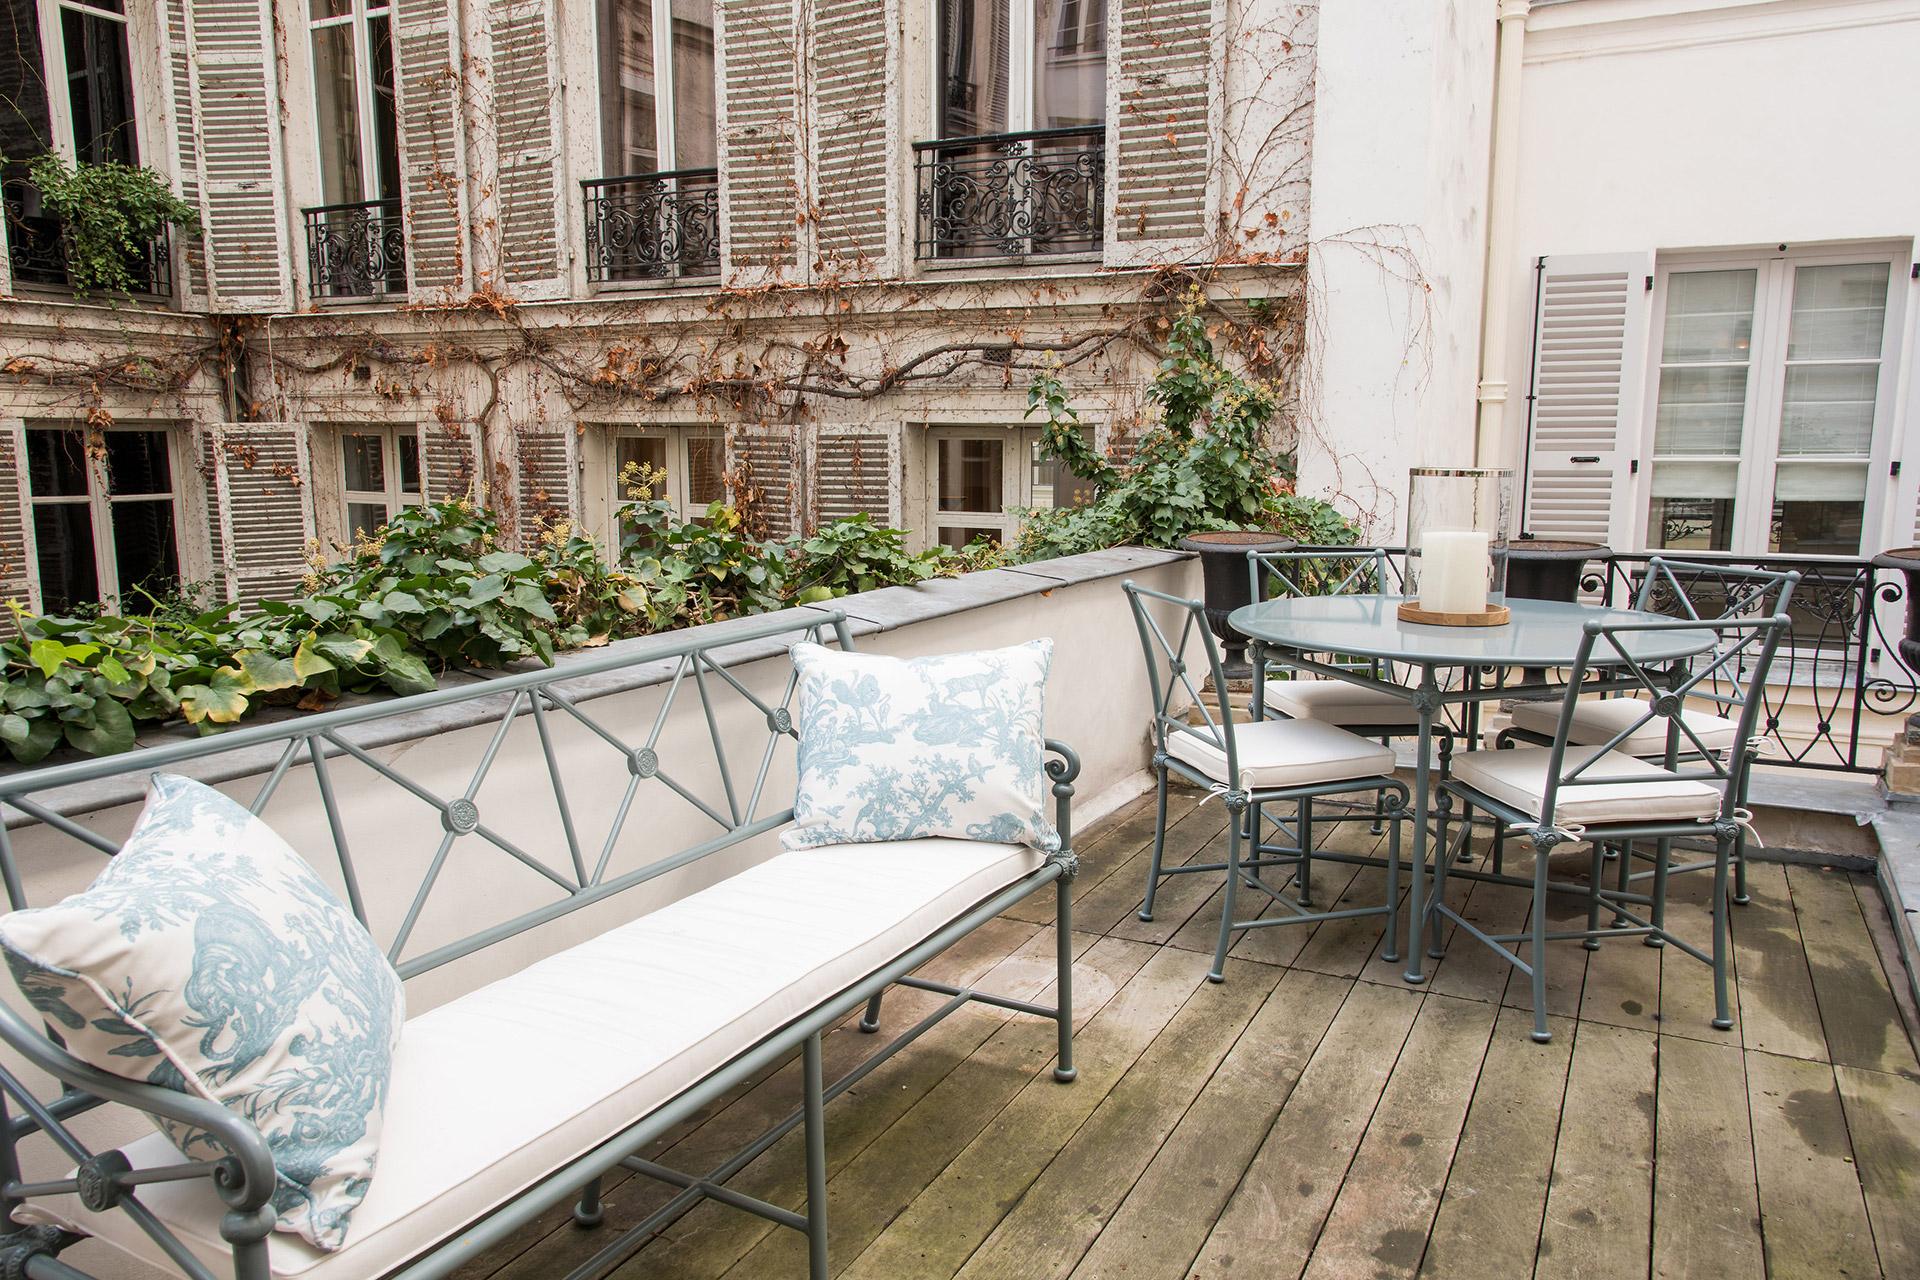 Beautifil outdoor space to enjoy your morning nespresso